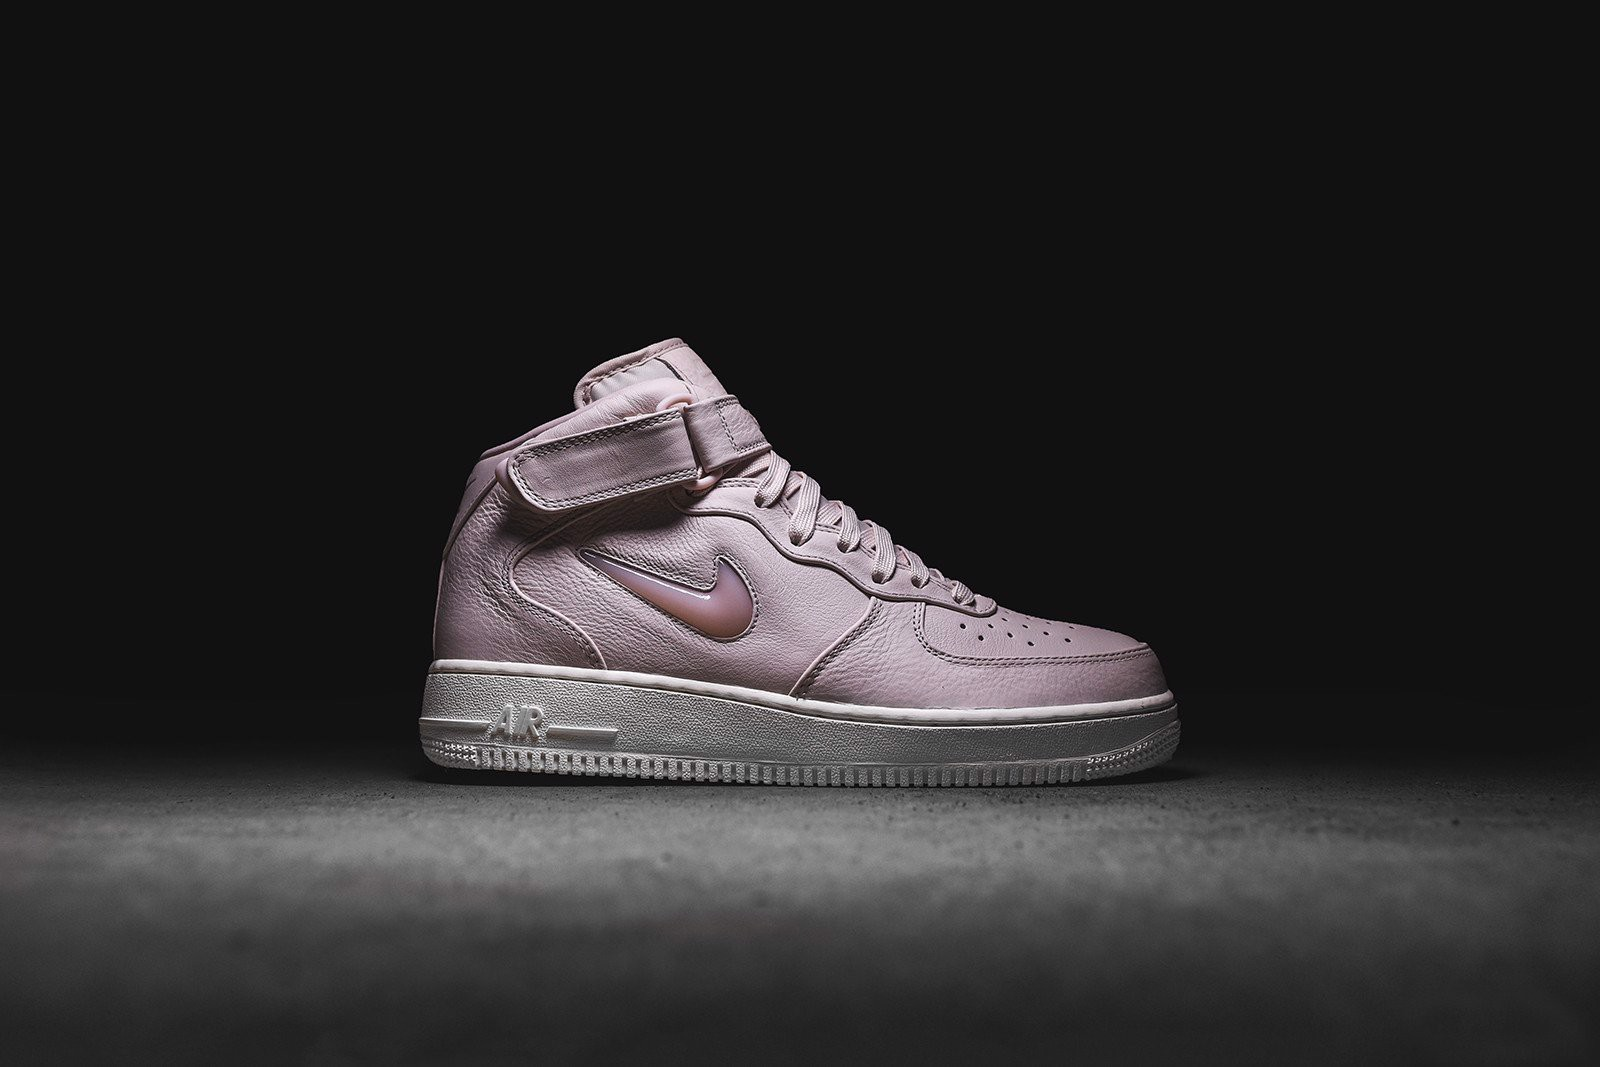 Nike Air Force 1 Mid Retro Prm 'Silt Red' 941913-600